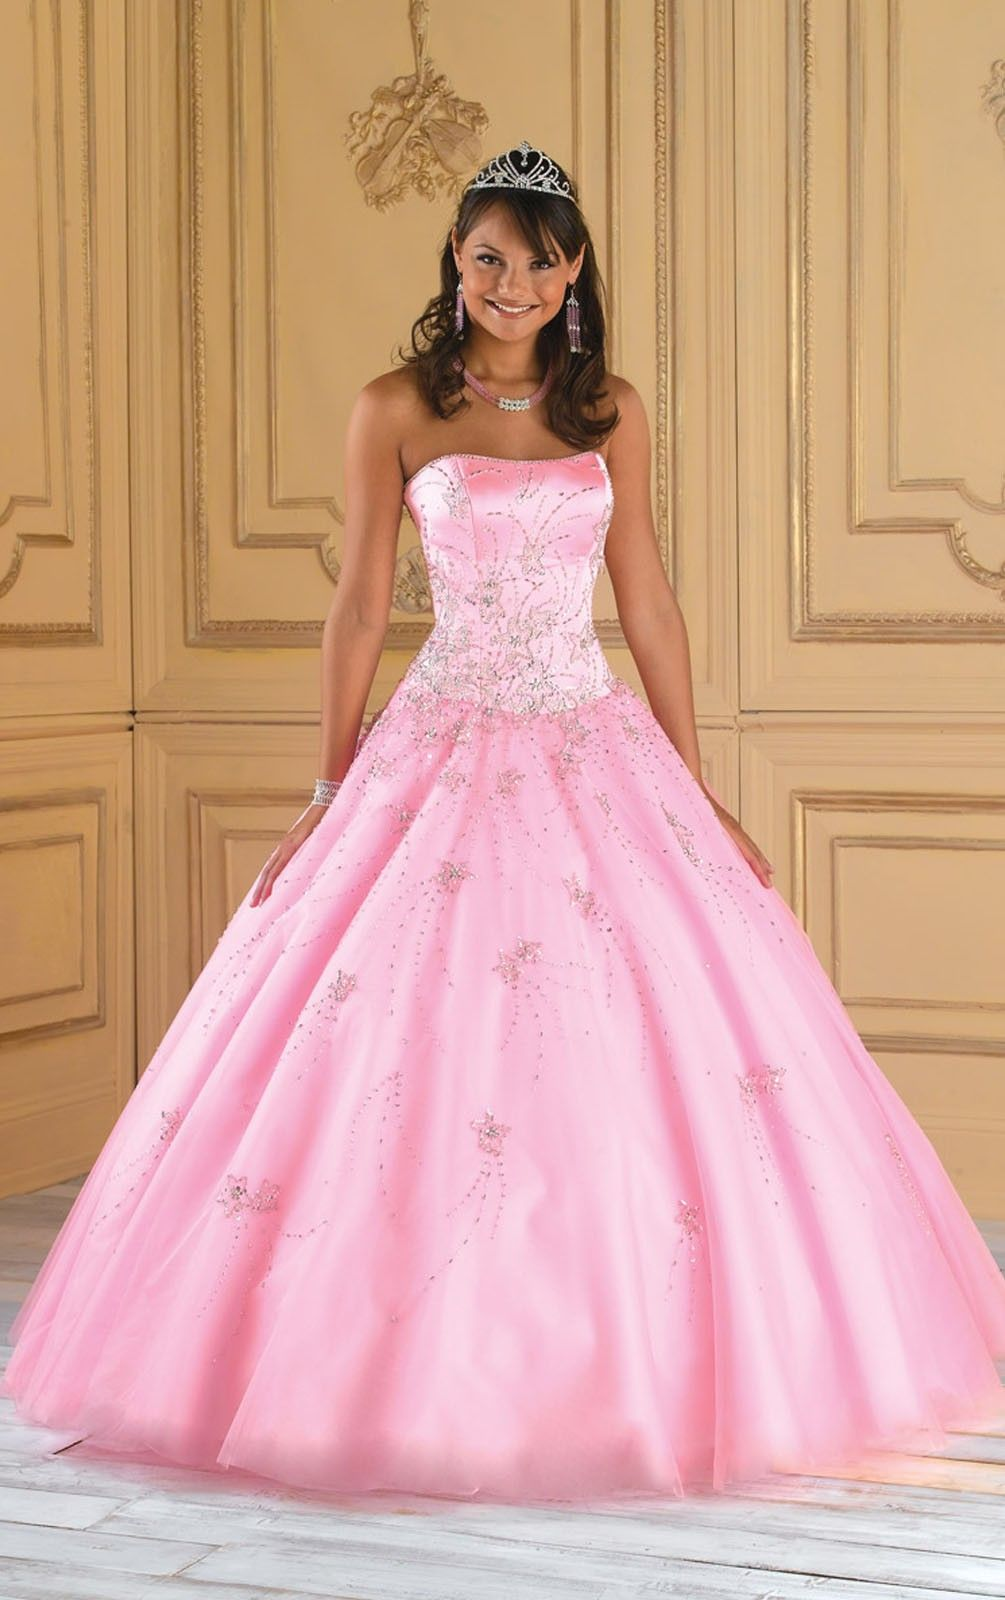 ball gowns for teenagers -   Quincenera's   Pinterest   Ball gowns ...